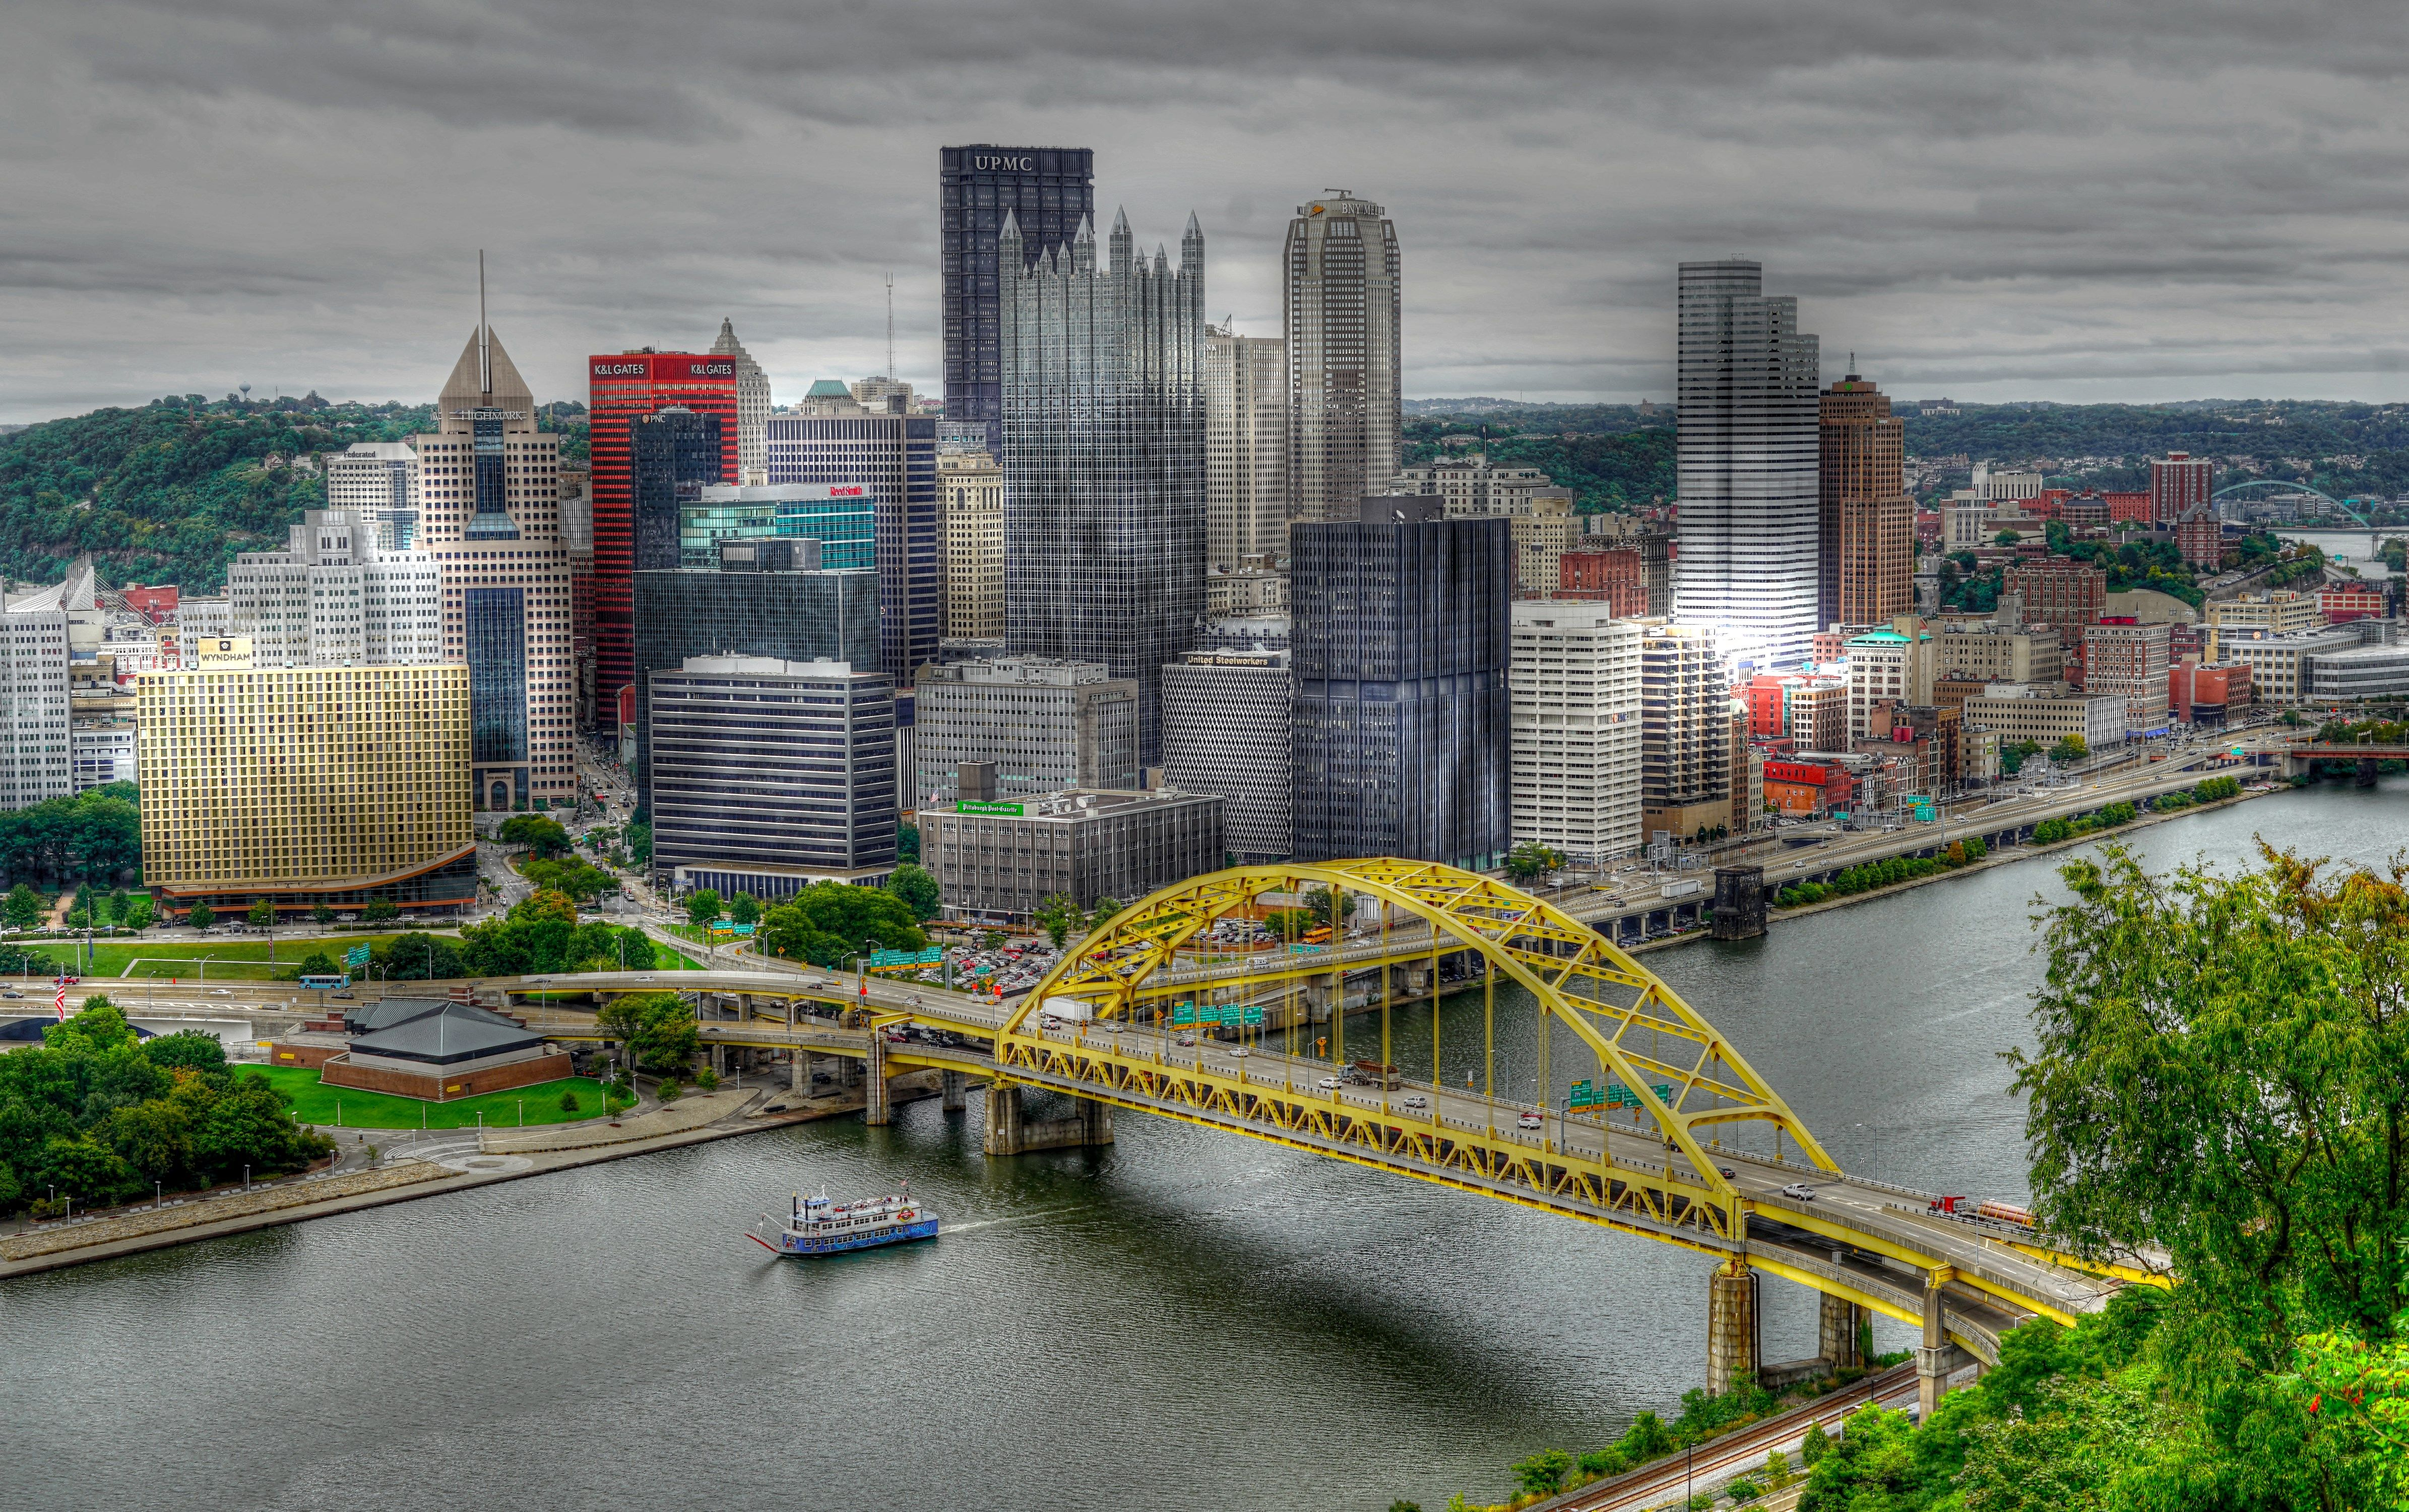 Pittsburgh Pic Hd Perl Smith 4780x3000 New Wallpaper Wallpaper Desktop Wallpapers Backgrounds